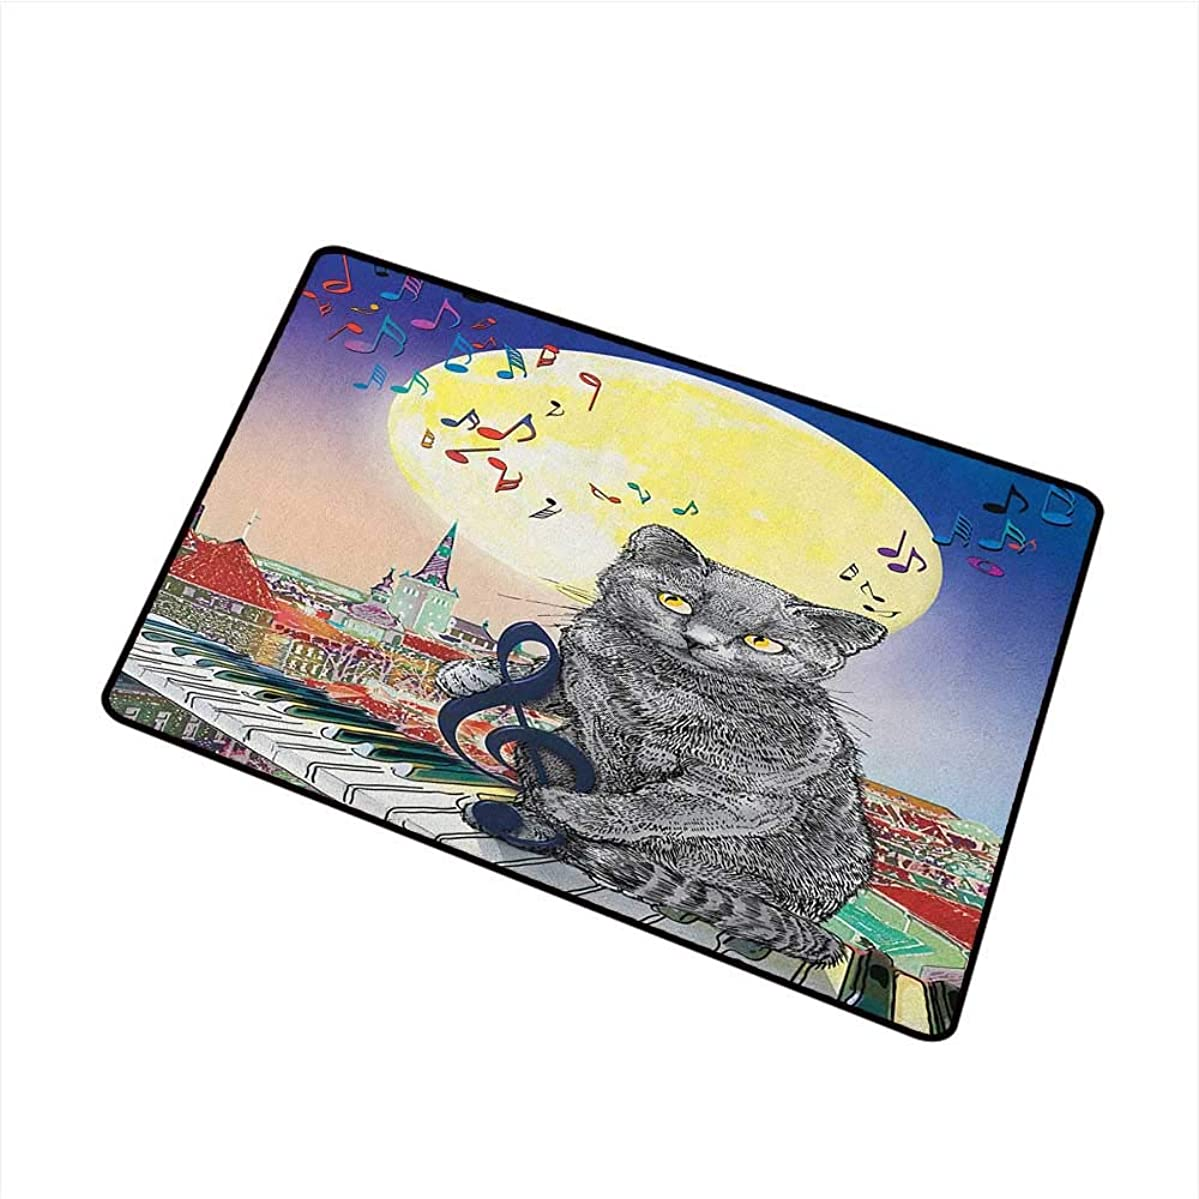 Wang Hai Chuan City Welcome Door mat Musical Notes Cat with The Keyboard on Rooftops in Night Sky Old Town Full Moon Art Print Door mat is odorless and Durable W15.7 x L23.6 Inch Multi